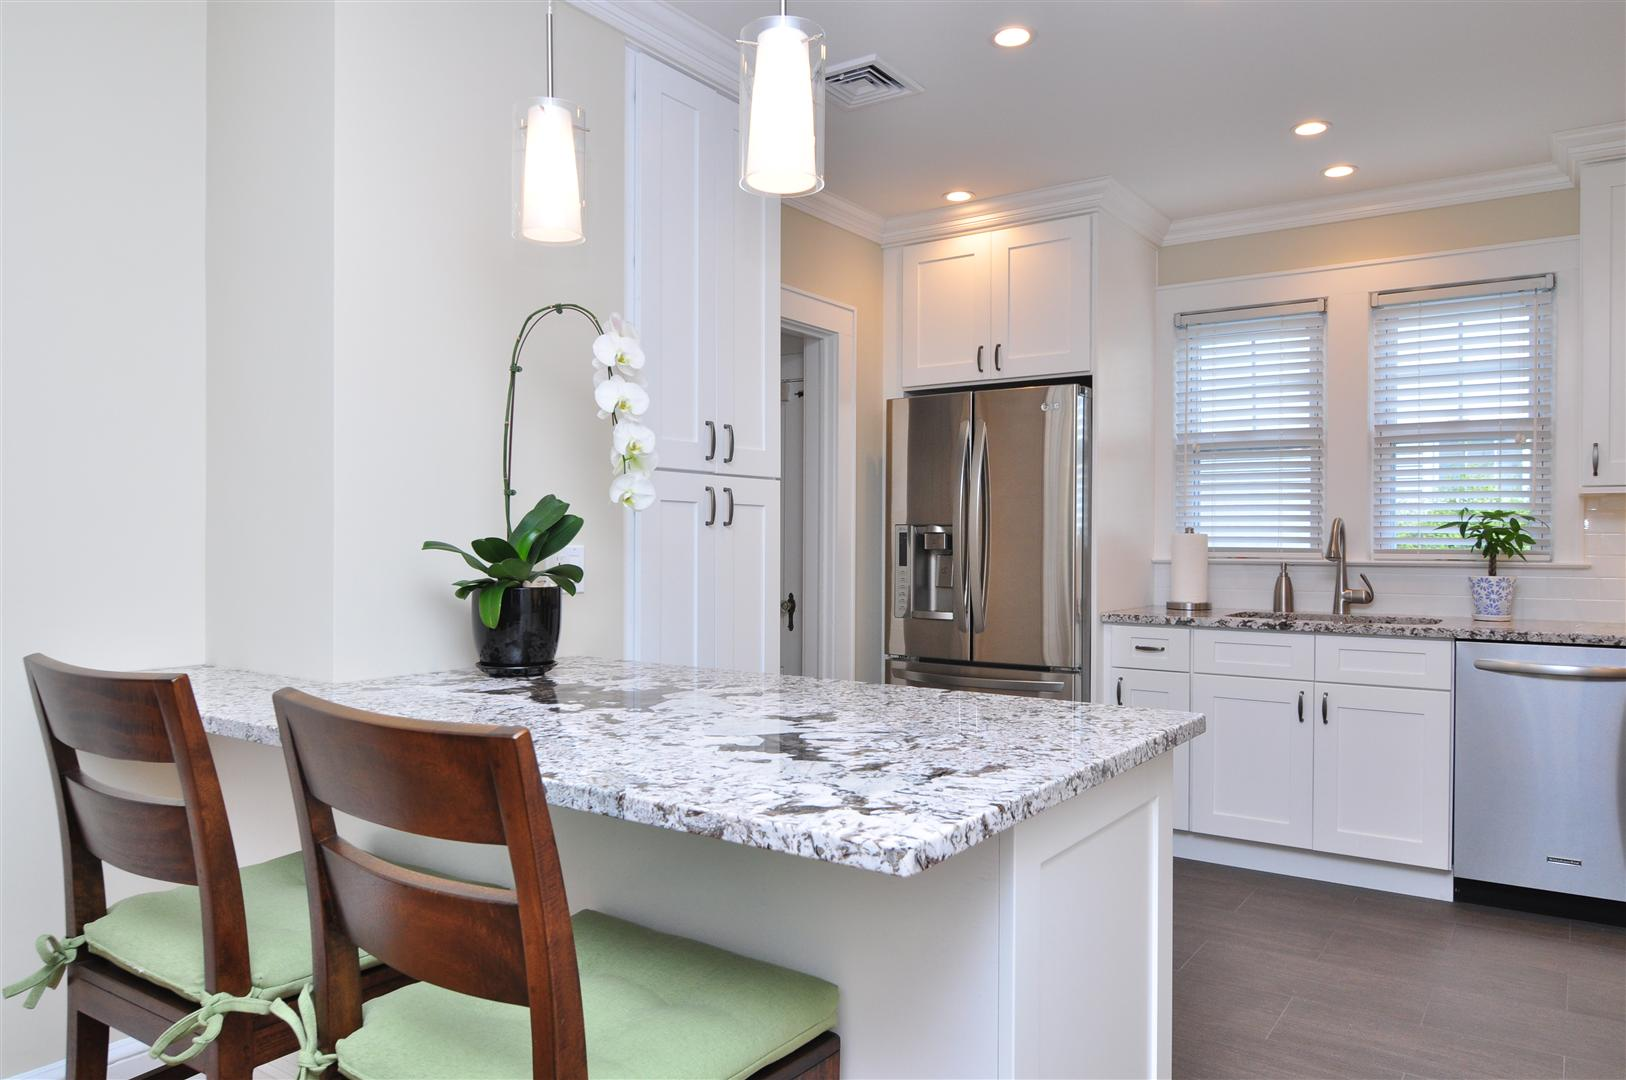 Kitchen Bathroom Remodeling Hasbrouck Heights NJ Alba Kitchen - Bathroom remodeling paramus nj